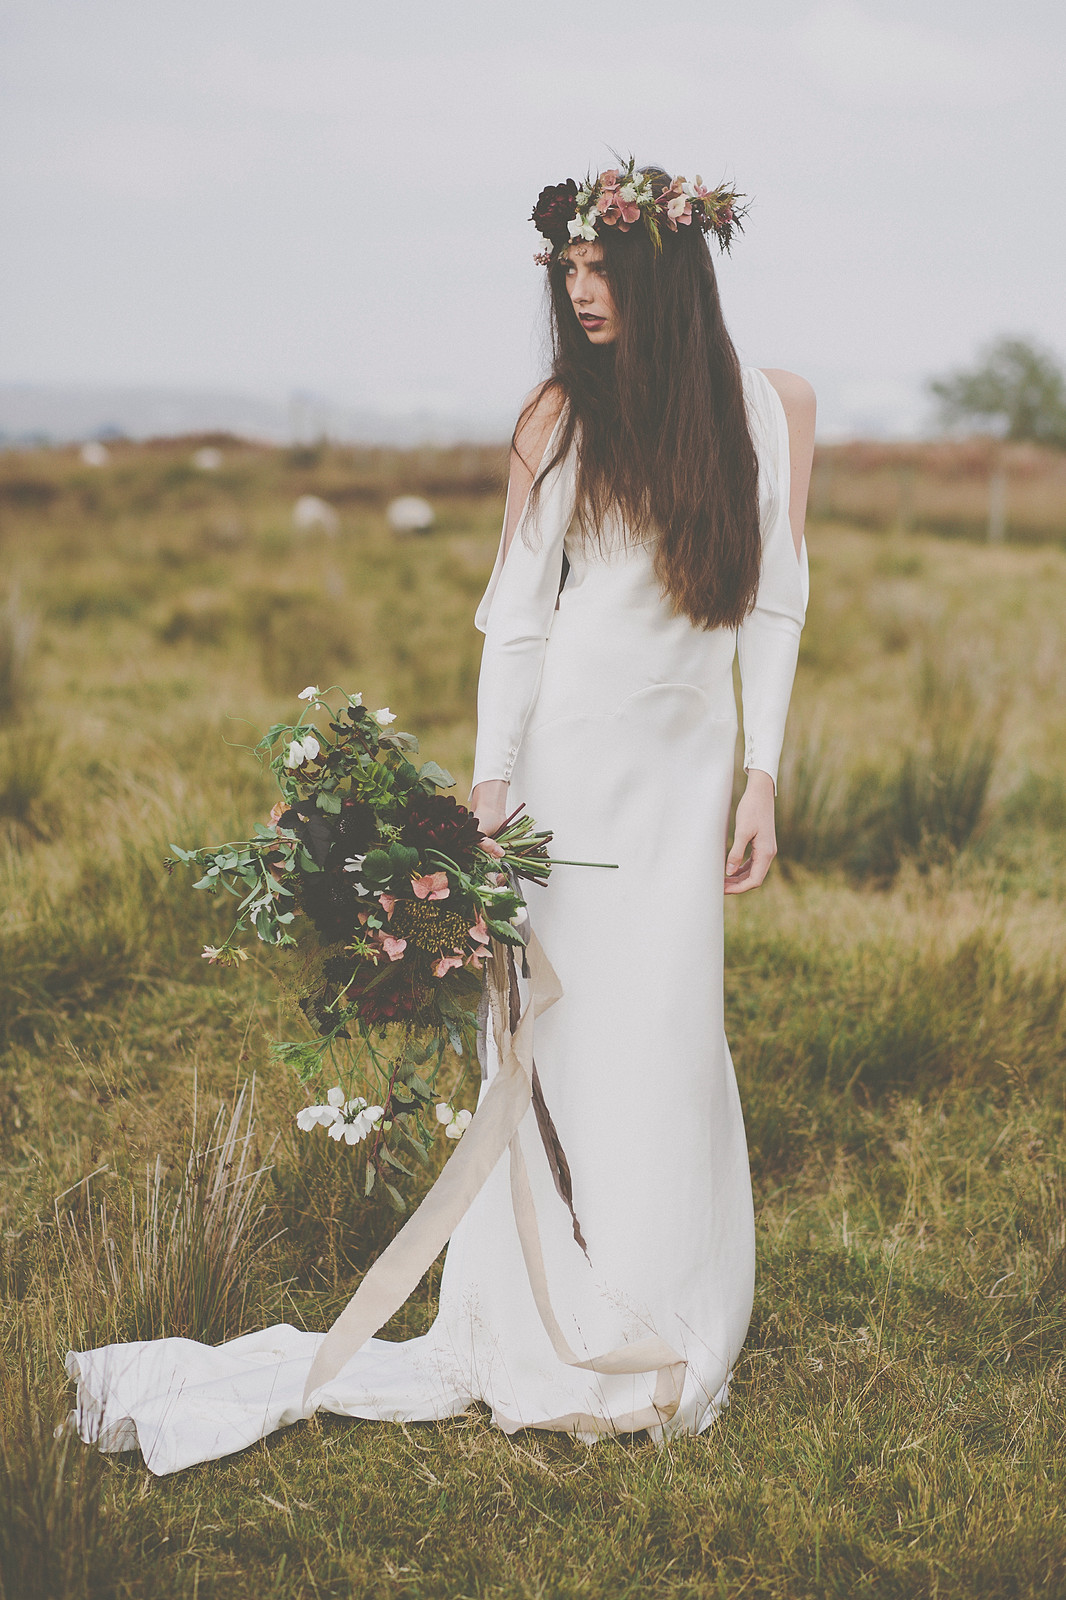 Zena May Lookbook |Fashionable wedding dresses for chic brides.